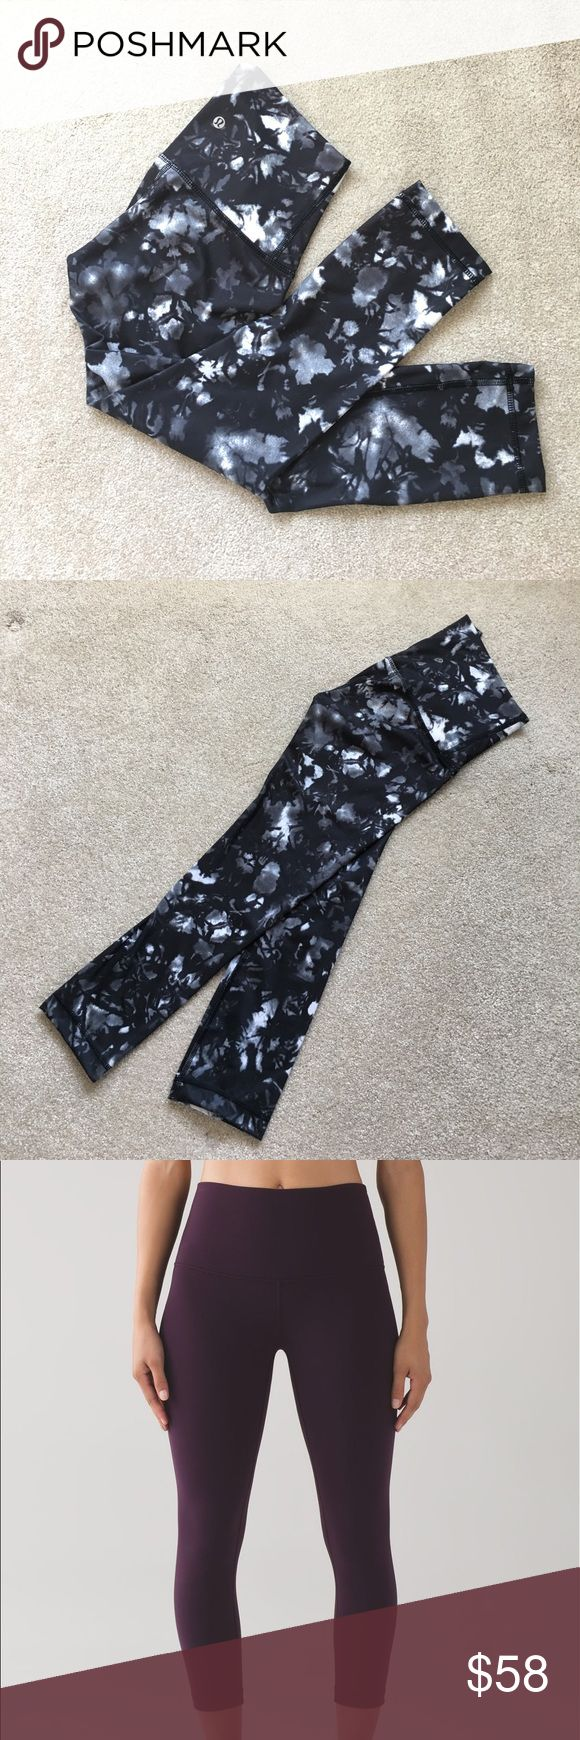 "Lululemon Wunder Under Crop (Hi-Rise) 21"" _Size 2 Lululemon Wunder Under Crop (Hi-Rise) FULL-ON LUON 21"" in size 2. The pattern is a black and white water color in picture 1&2. Sorry I couldn't find any stock photos so I used different color stock photos to show what they look on person. In like new condition! Only wore twice, and hand washed only. Never been in the washer or dryer. No tears or pilling. True to size lululemon athletica Pants Ankle & Cropped"